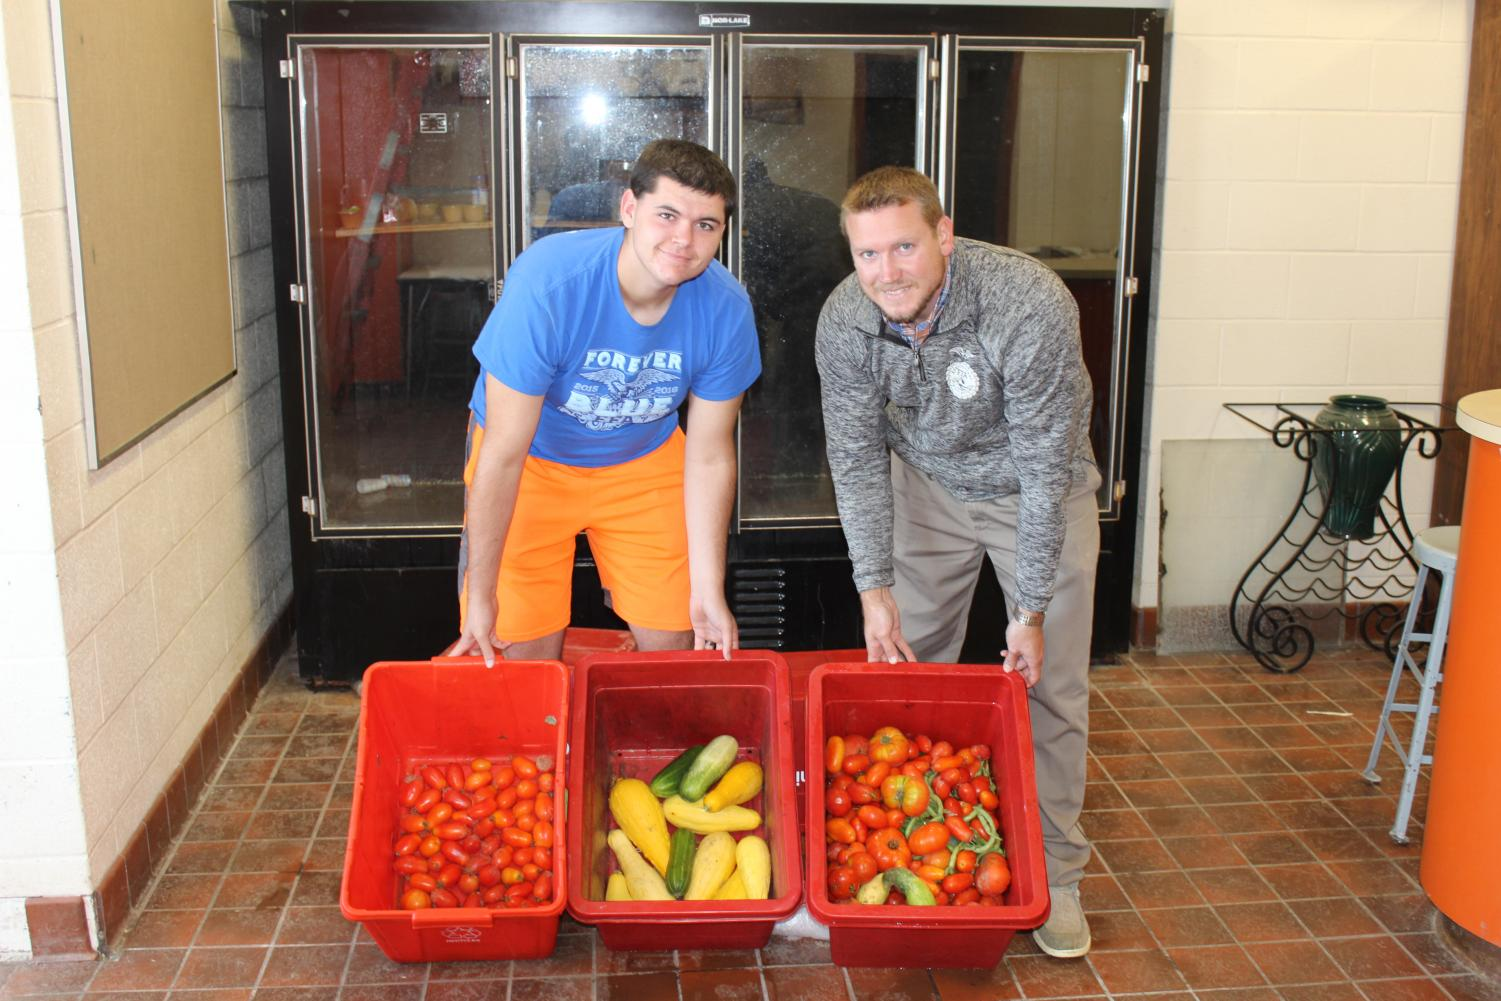 Jonas Brown, left, and Mr. Plank, right, show off this week's produce that was picked.